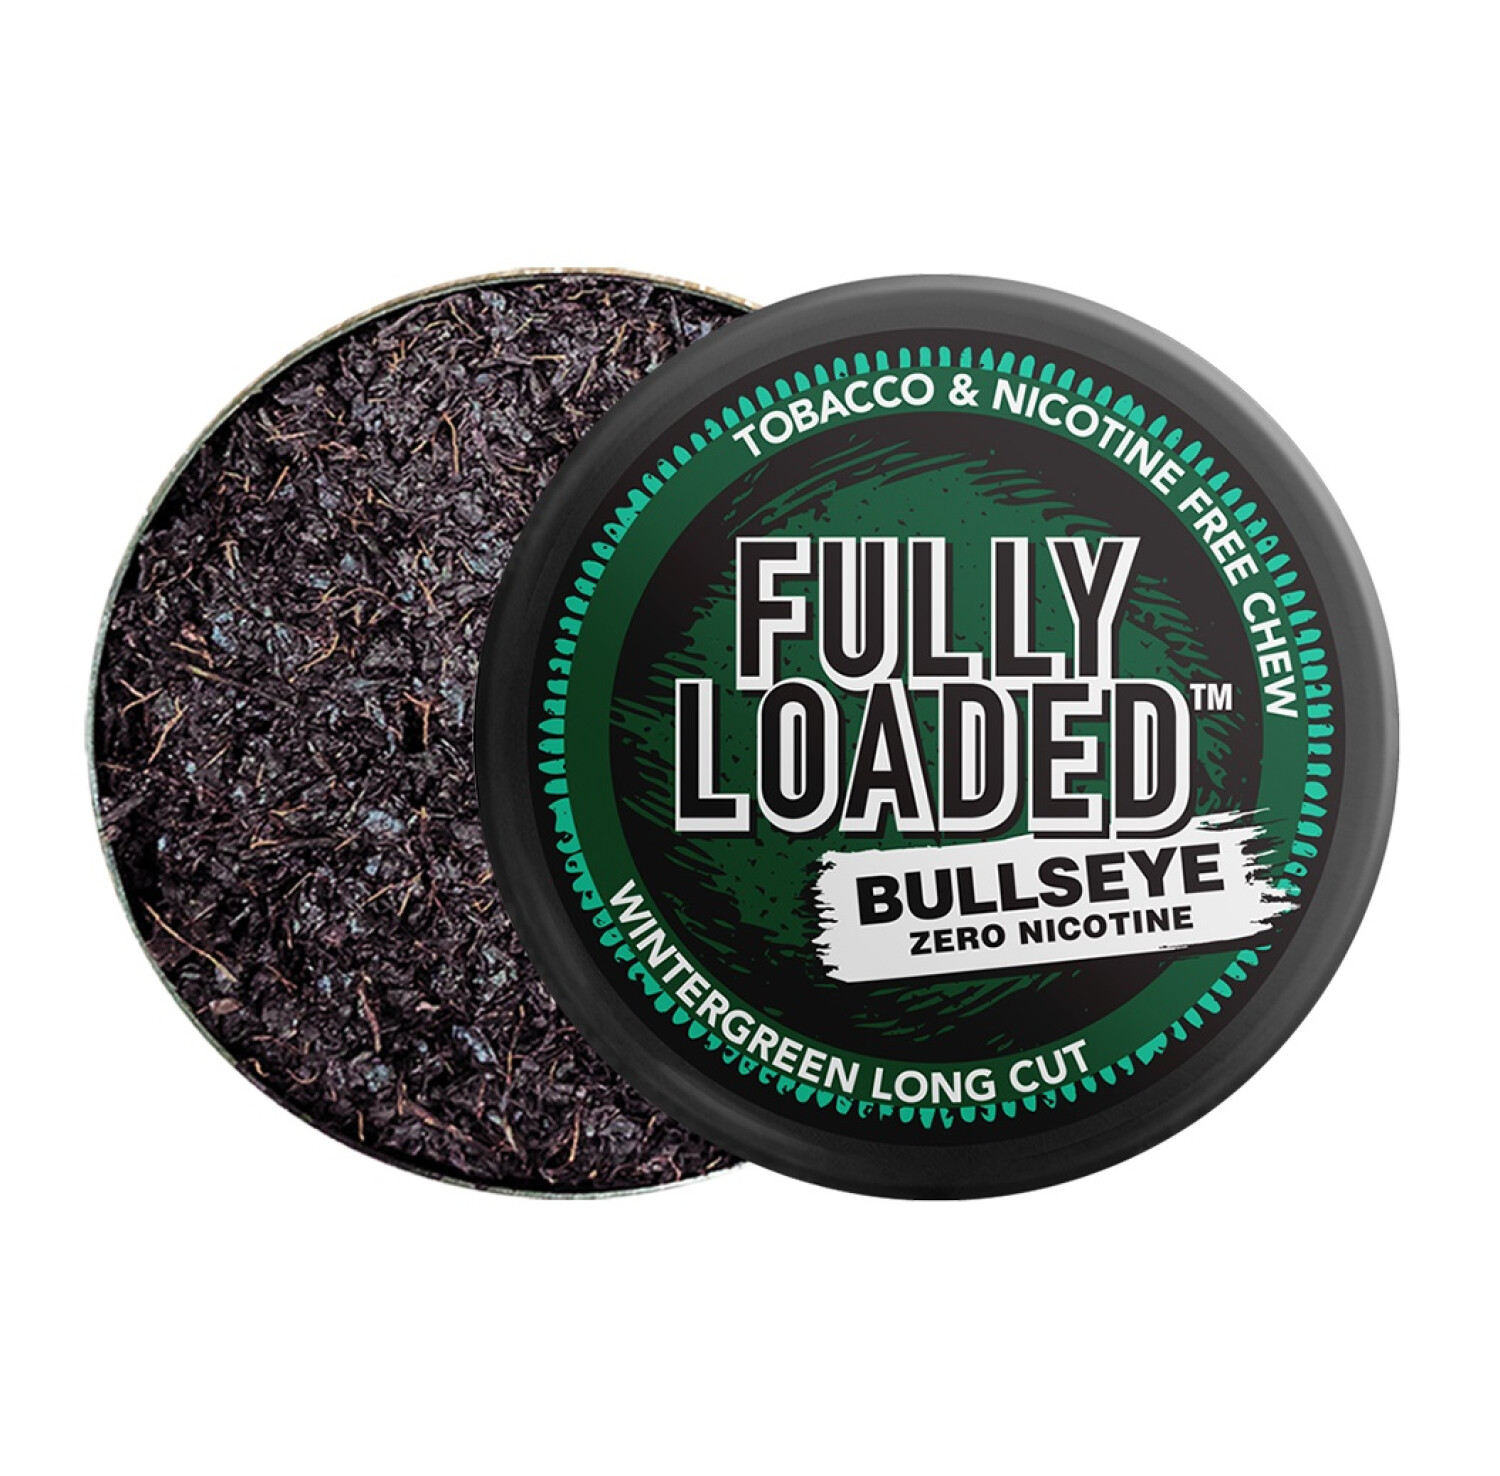 Fully Loaded Chew Tobacco and Nicotine Free Wintergreen Bullseye Long Cut Refreshing Flavor, Chewing Alternative